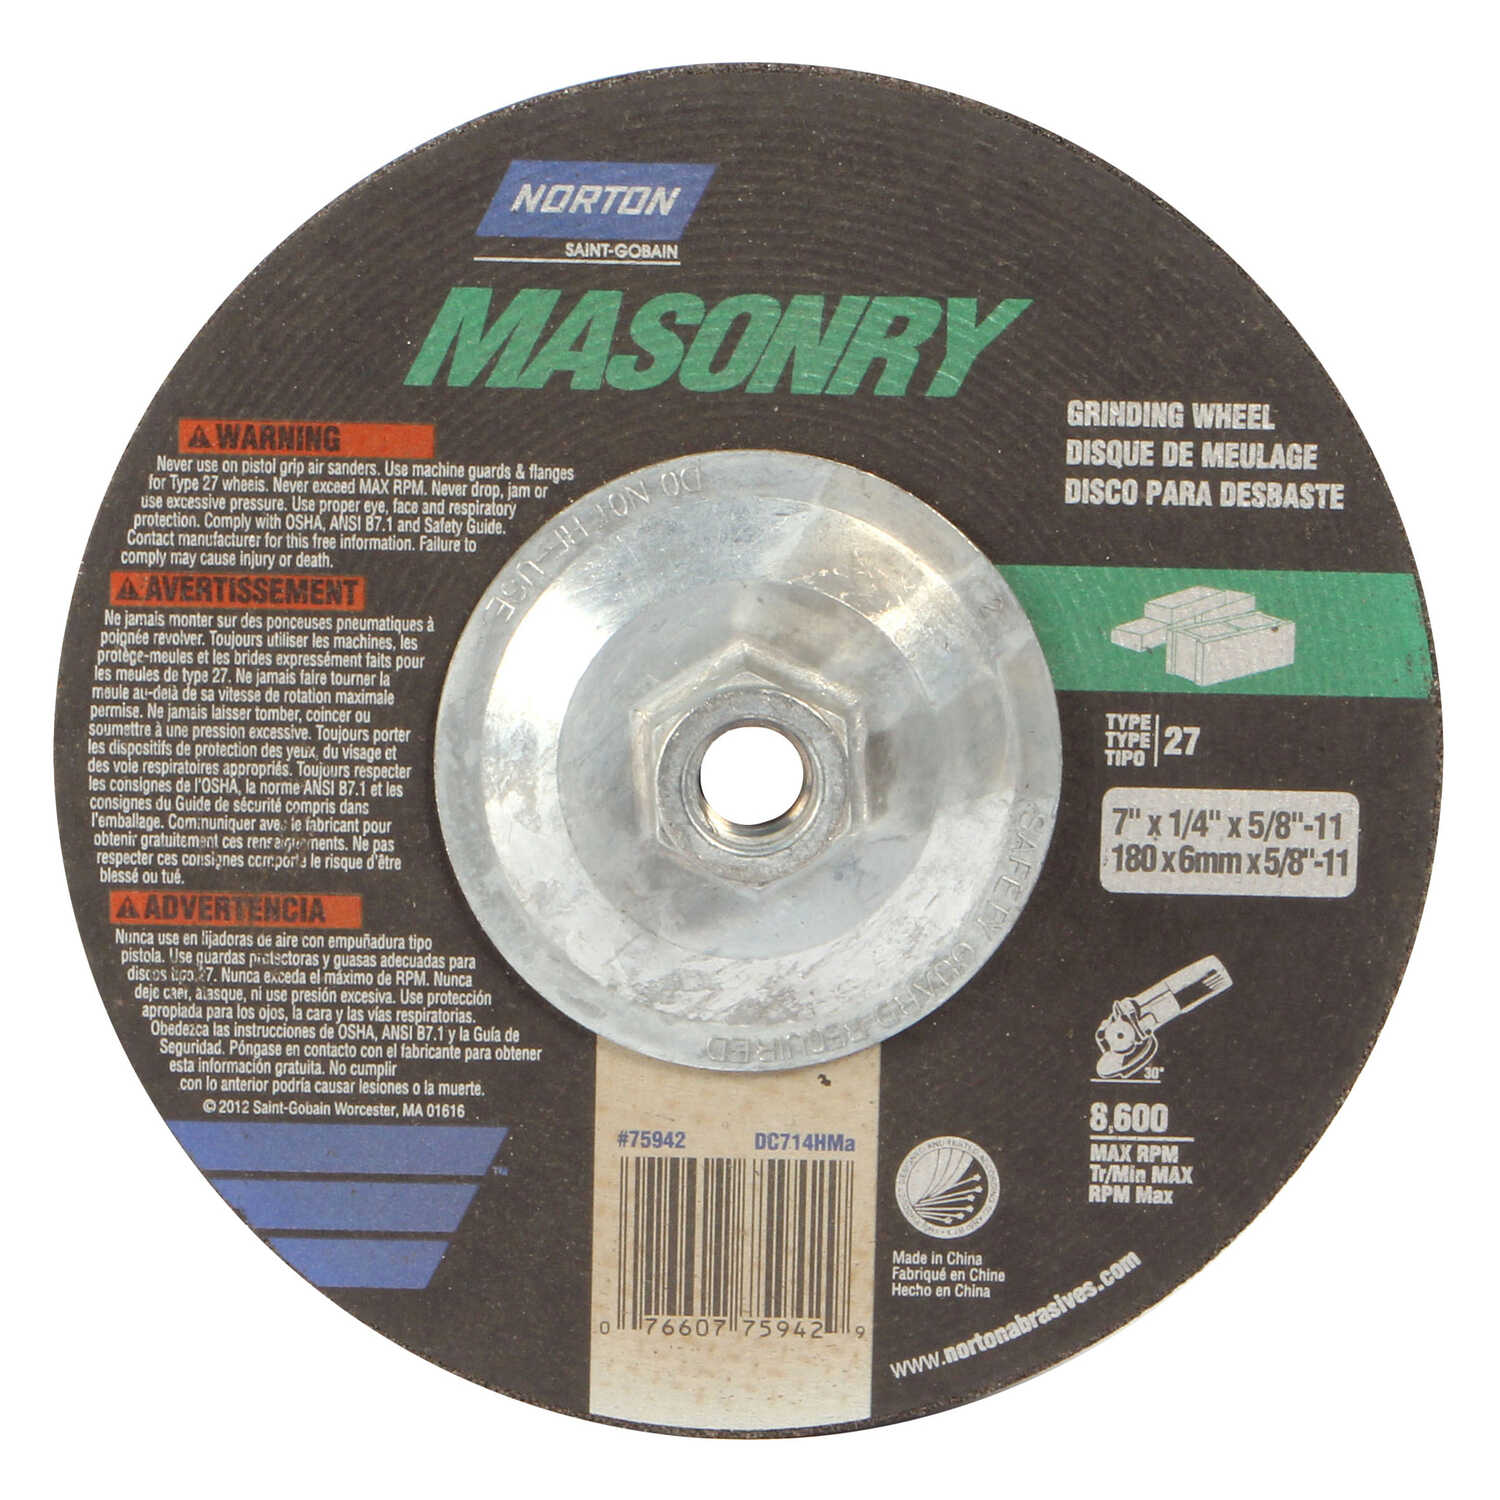 Norton  7 in. Dia. x 1/4 in. thick  x 5/8 in.   Silicon Carbide  Grinding Wheel  8600 rpm 1 pc.